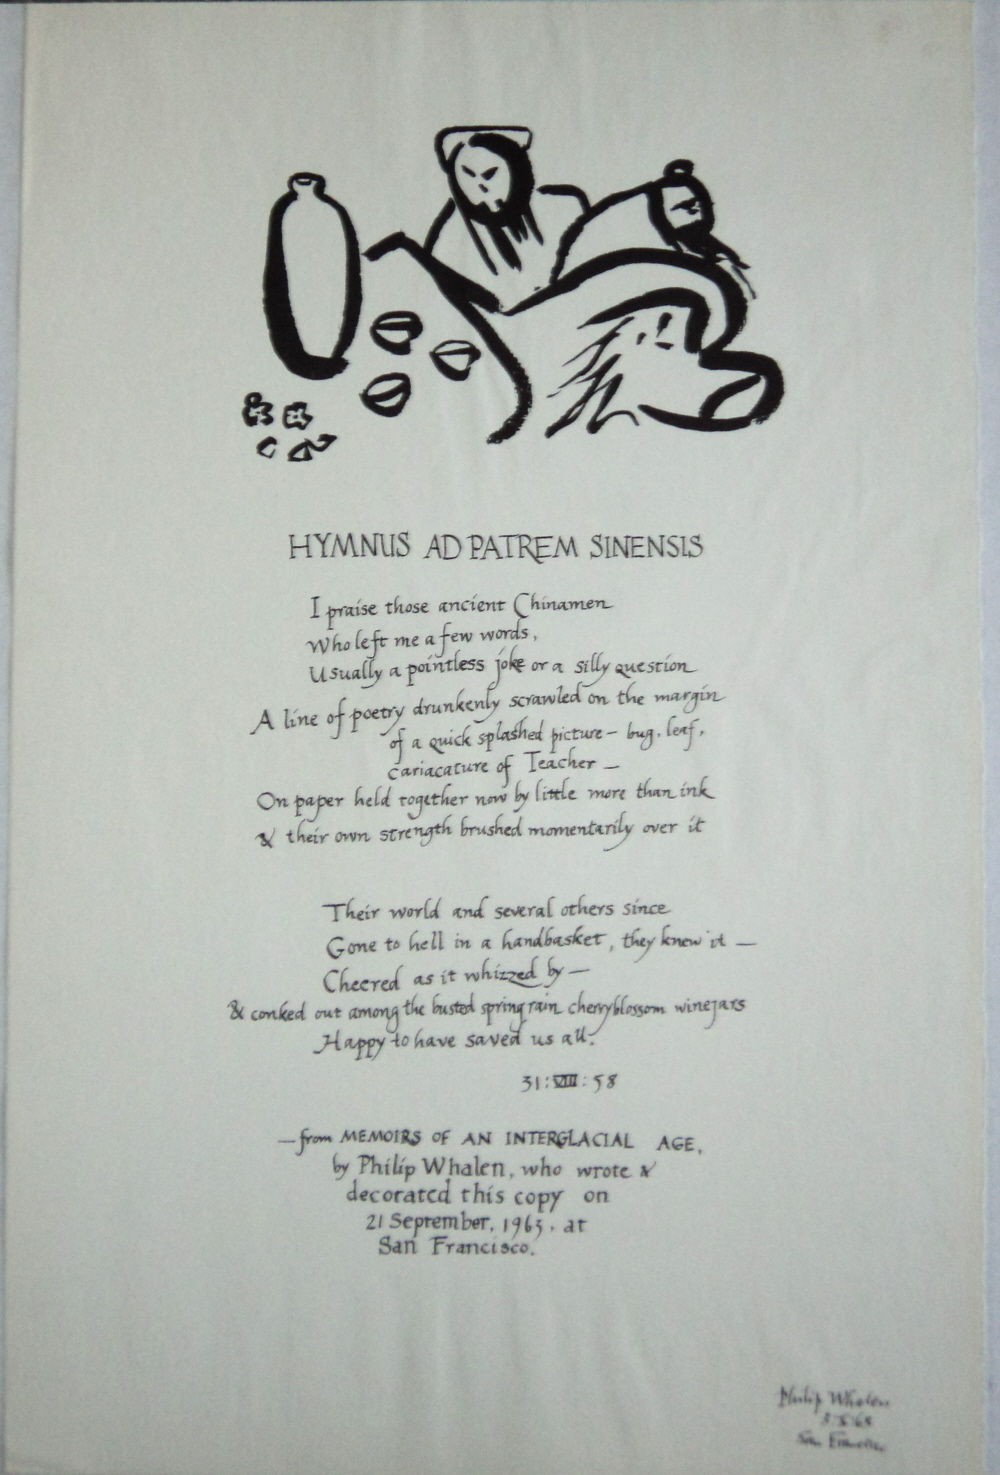 HYMNUS AD PATREM SINENSIS Whalen, Philip Very Good San Francisco: [San Francisco Arts Festival], 1963. 1963. Very good. SIGNED BY PHILIP WHALEN - sc - A 20 inch high by 13 inch wide broadside with the